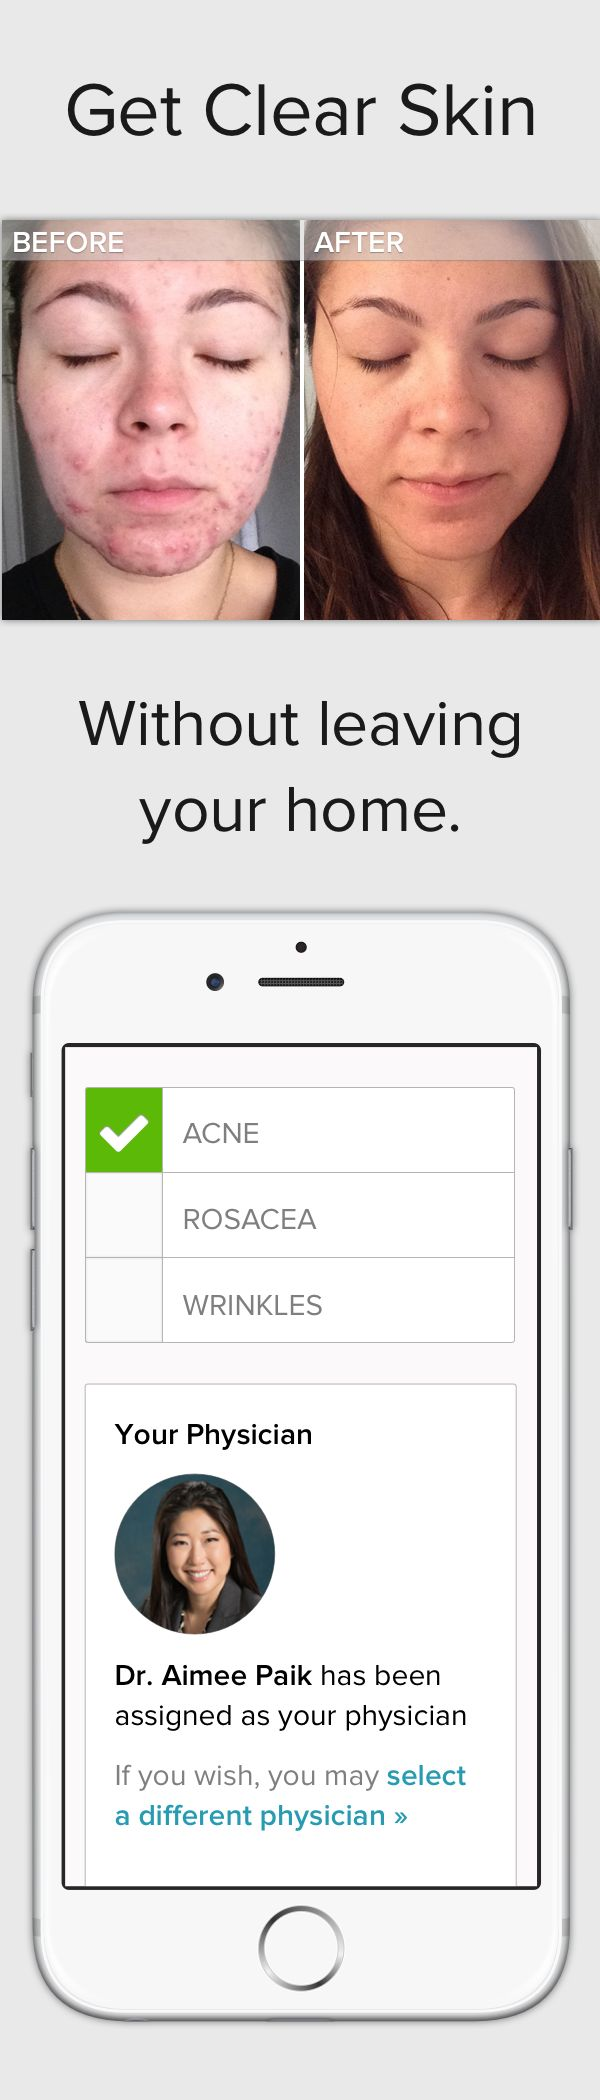 You can finally see a dermatologist from the comfort of your home. Start your acne consultation now — receive your personalized prescription treatment plan within 24 hours. No waiting. Start your path to clear skin today!